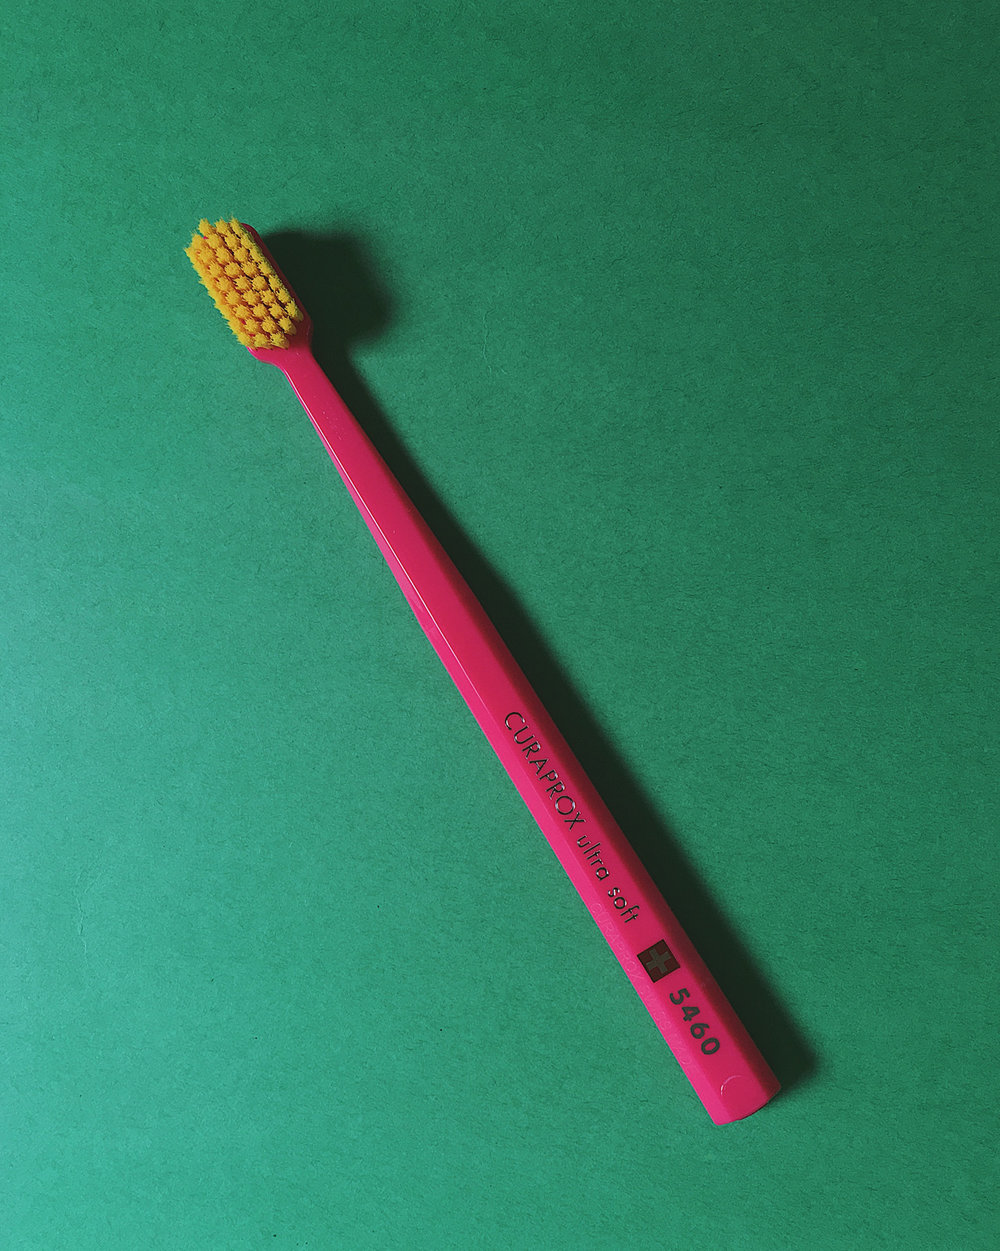 Curaprox CS 5460 Ultra Soft in magenta with yellow bristles